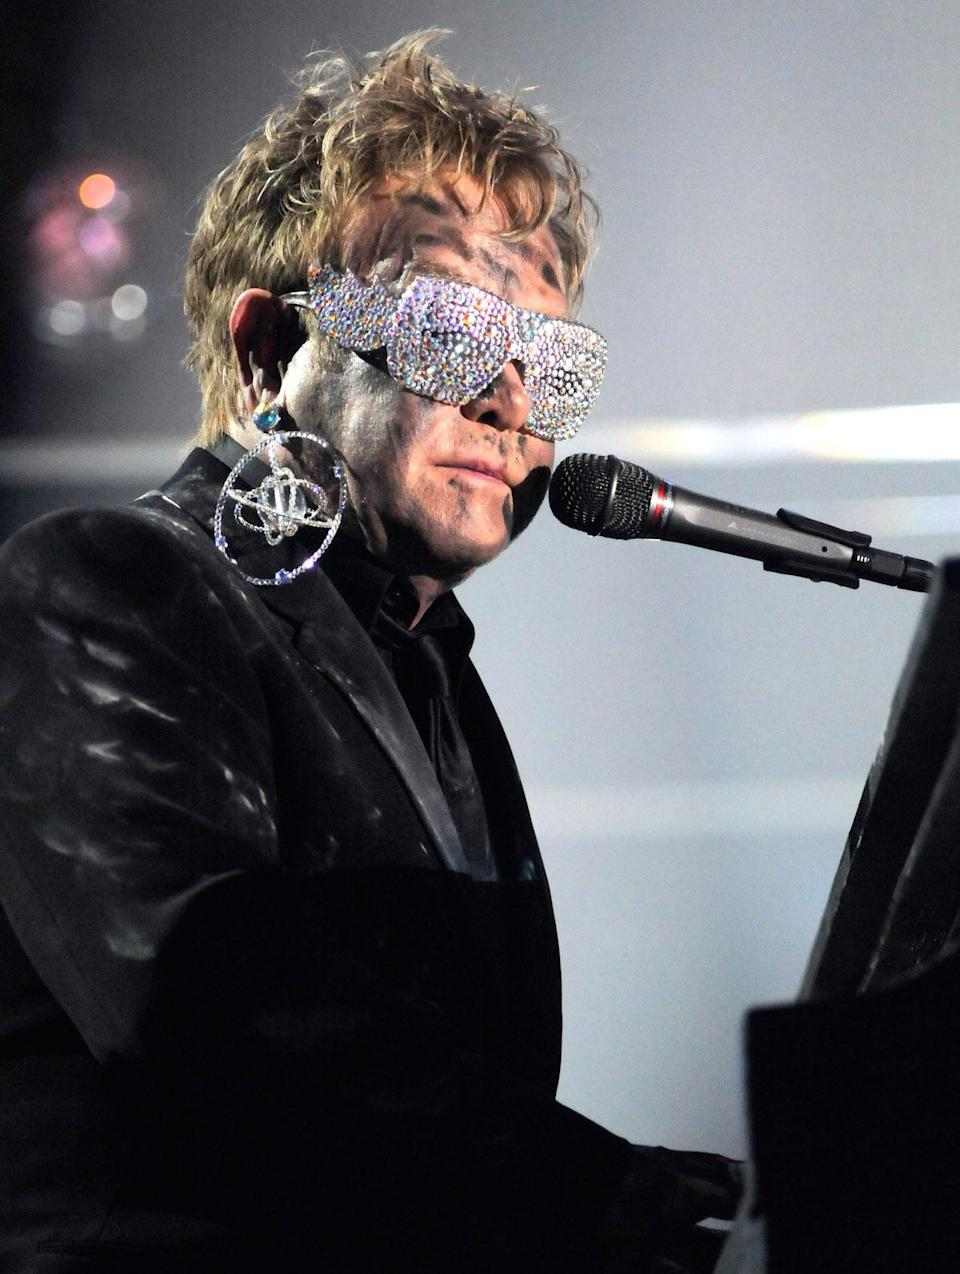 <p>Elton John performs at the 2010 Grammy Awards in a bedazzeled earring and glasses. (Photo: Getty Images) </p>